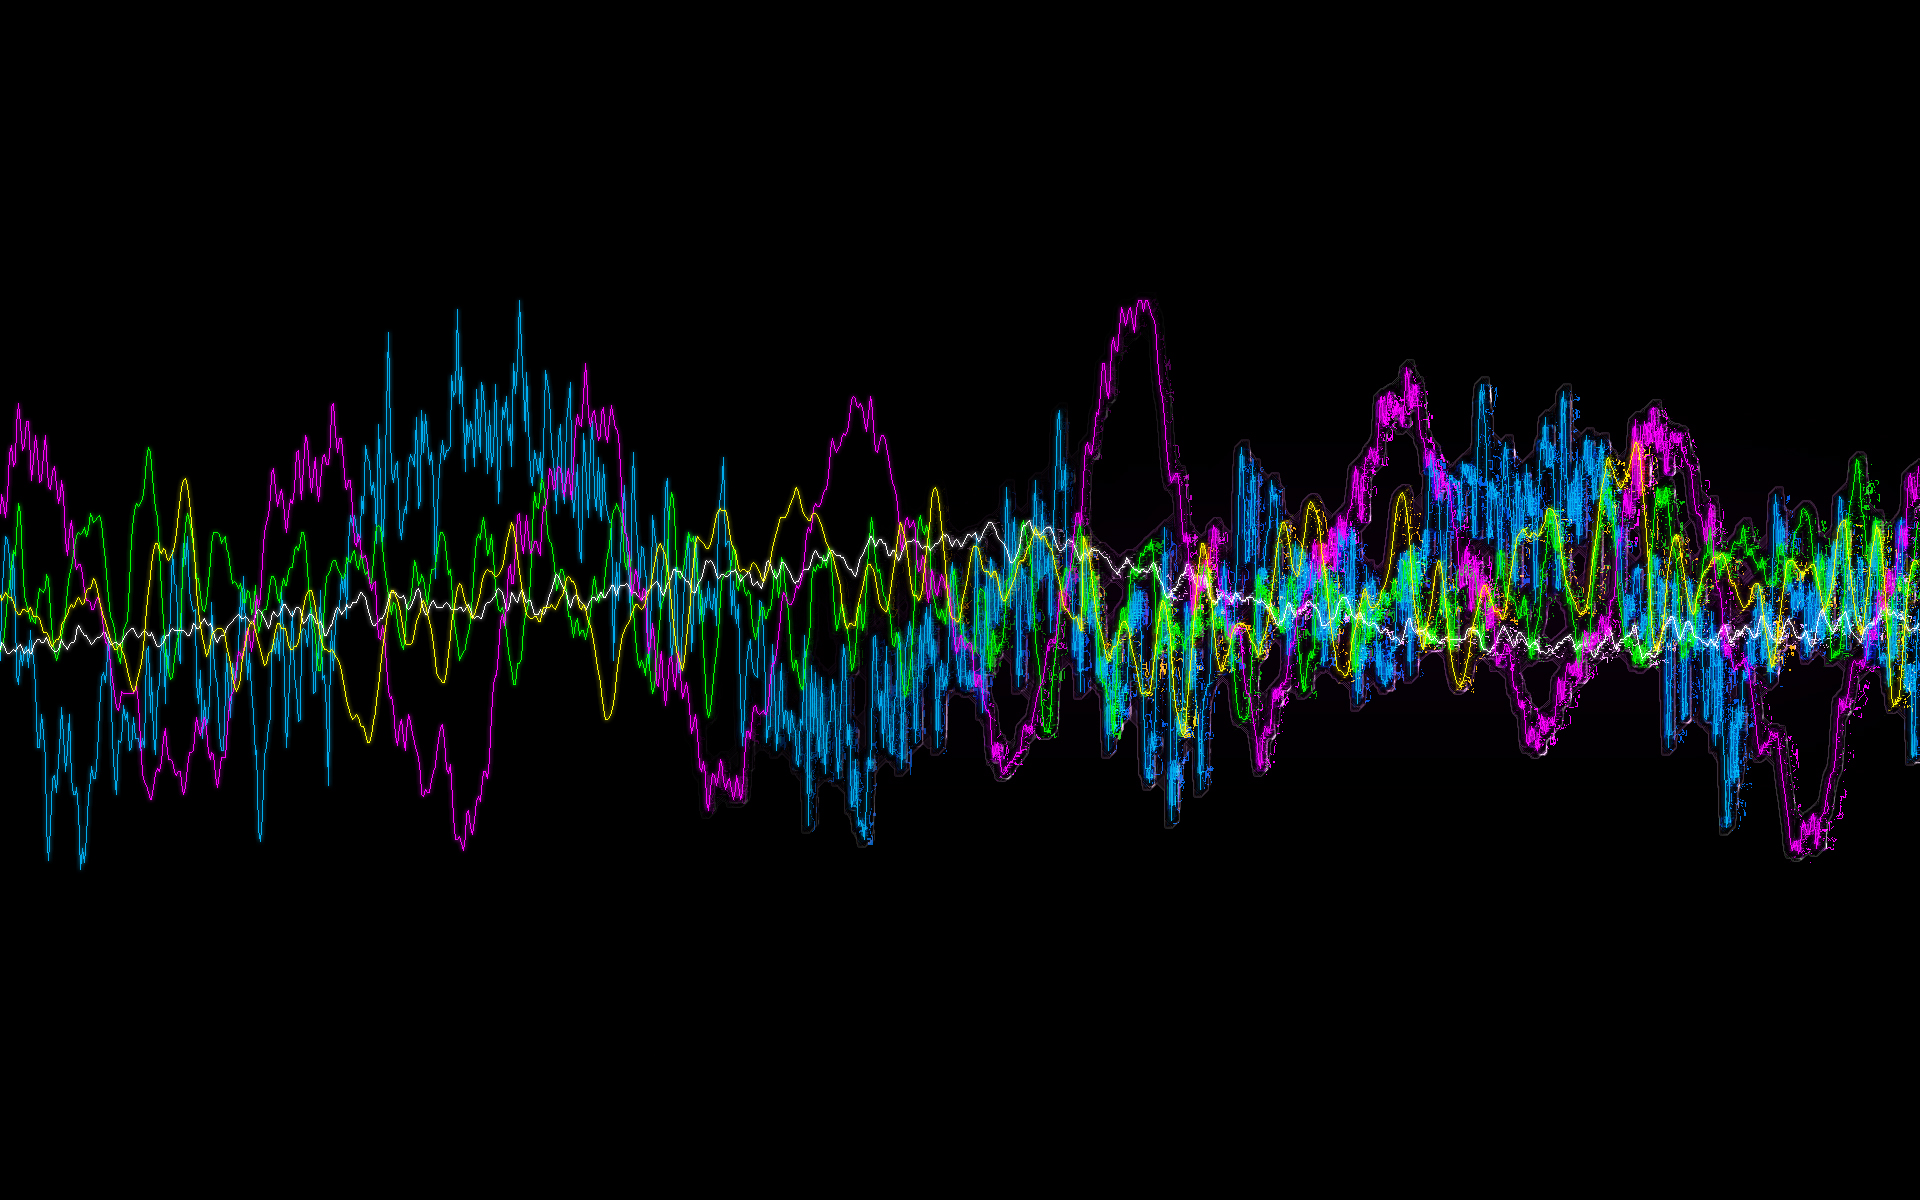 colorful sound wave wallpaper 47337